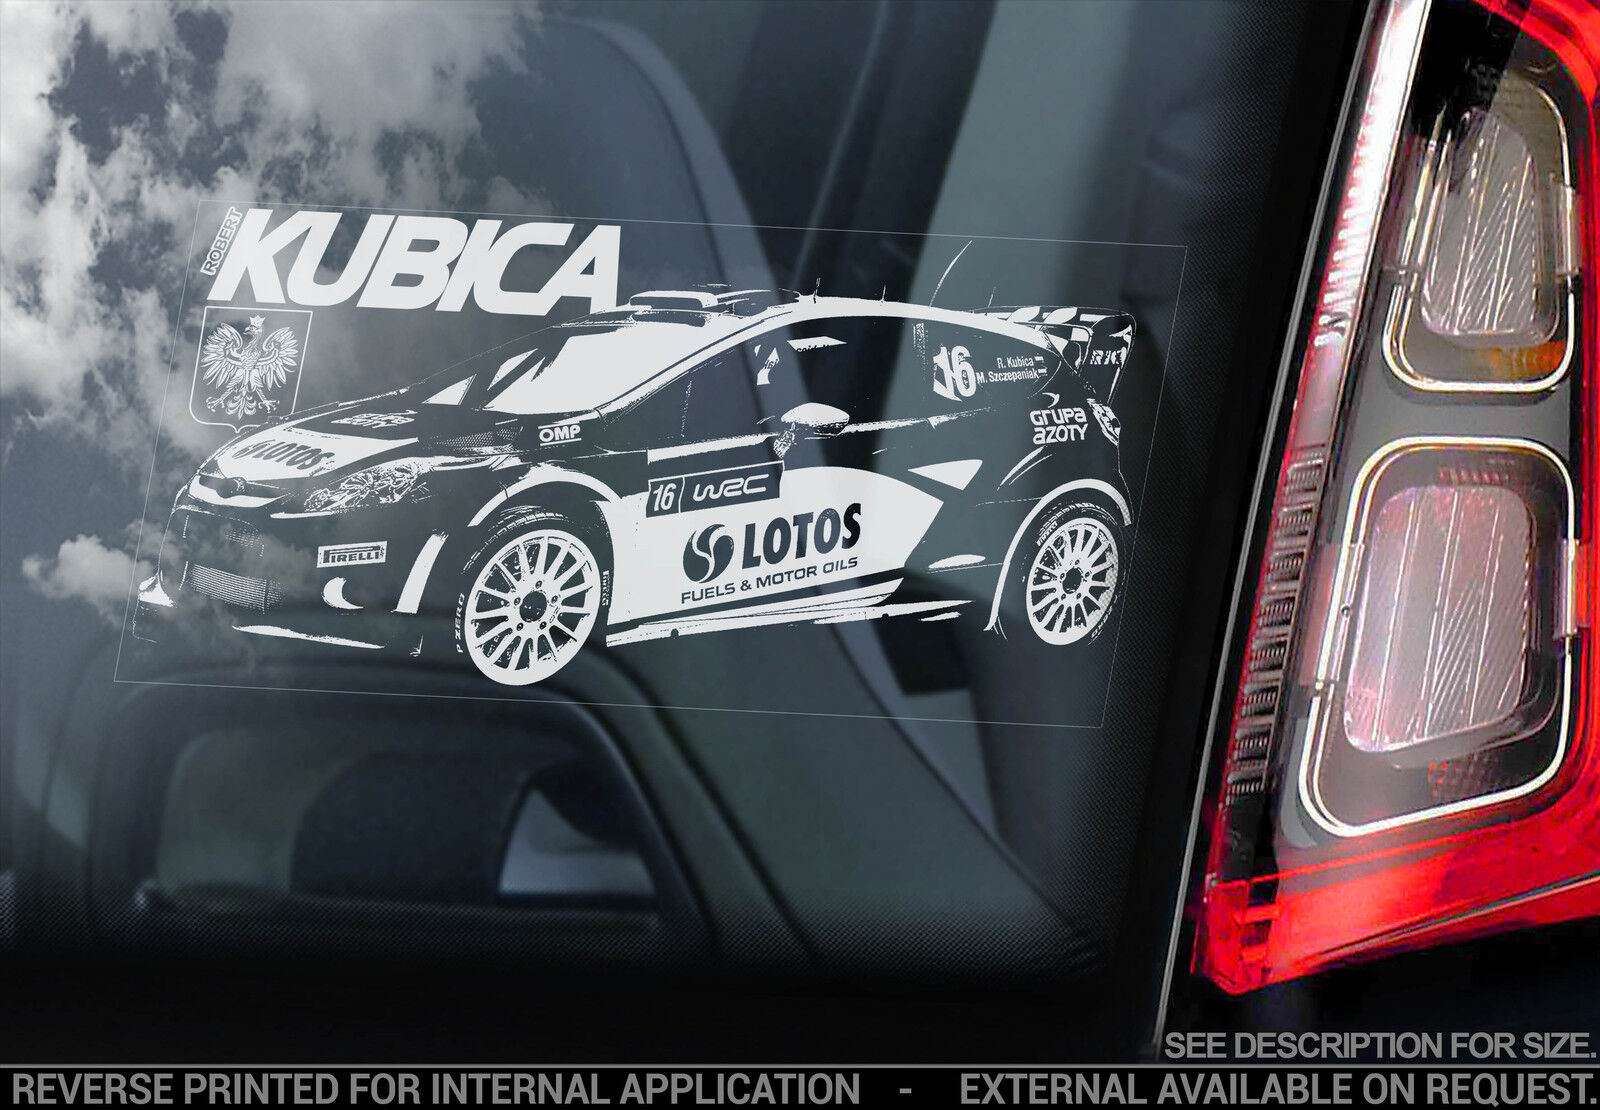 Robert kubica car window sticker ford fiesta rally wrc for Kubica cars